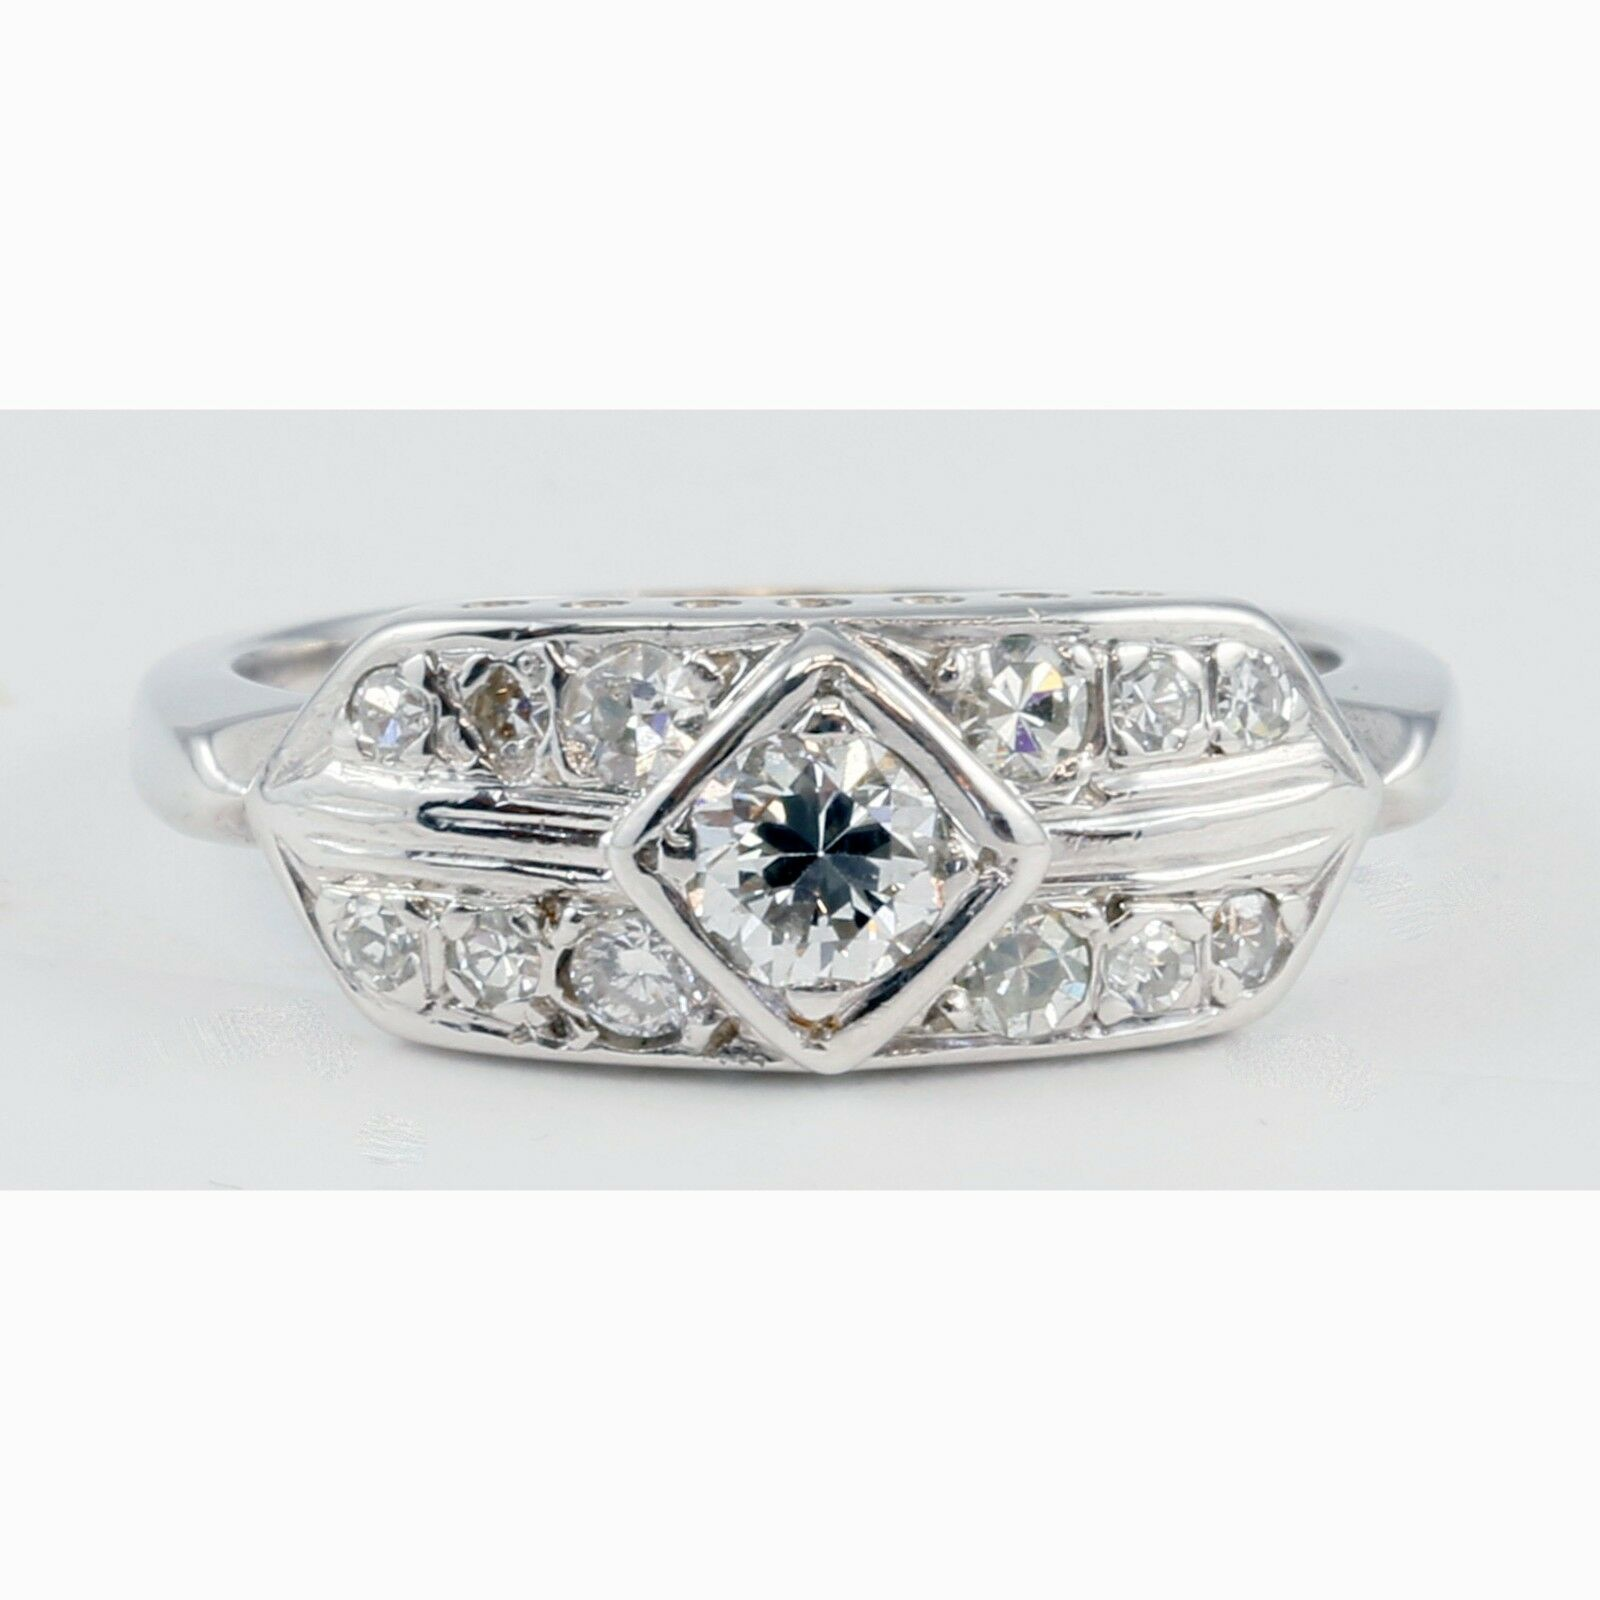 Antique Style 14k White gold Natural Round Diamond Ring Engagement or Fashion